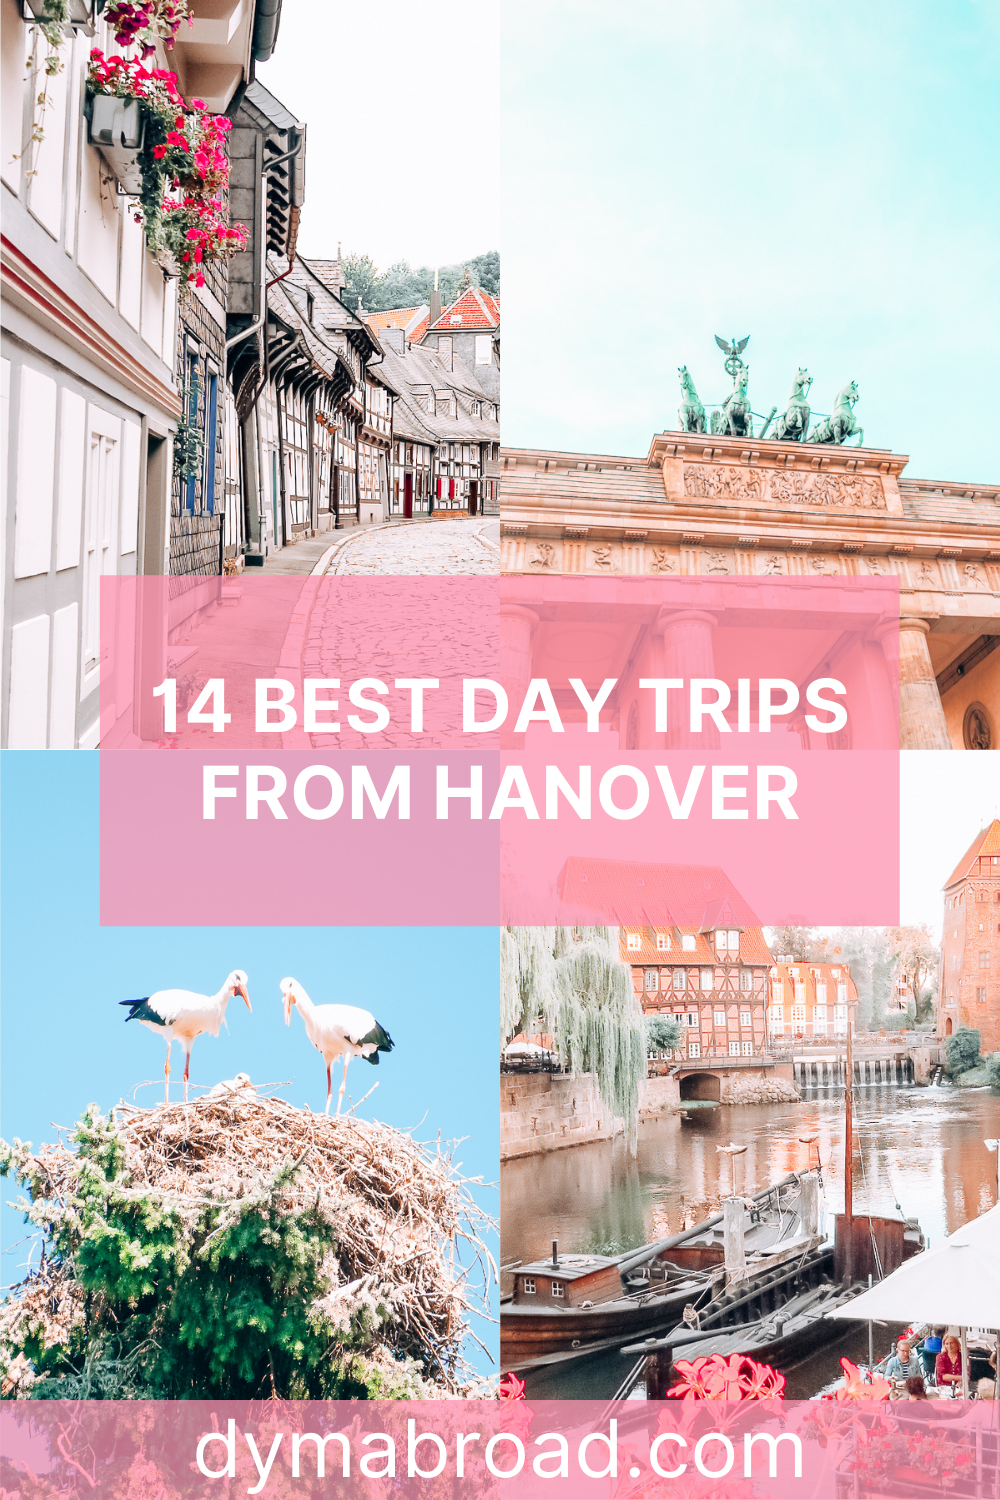 Day trips from Hanover Pinterest image